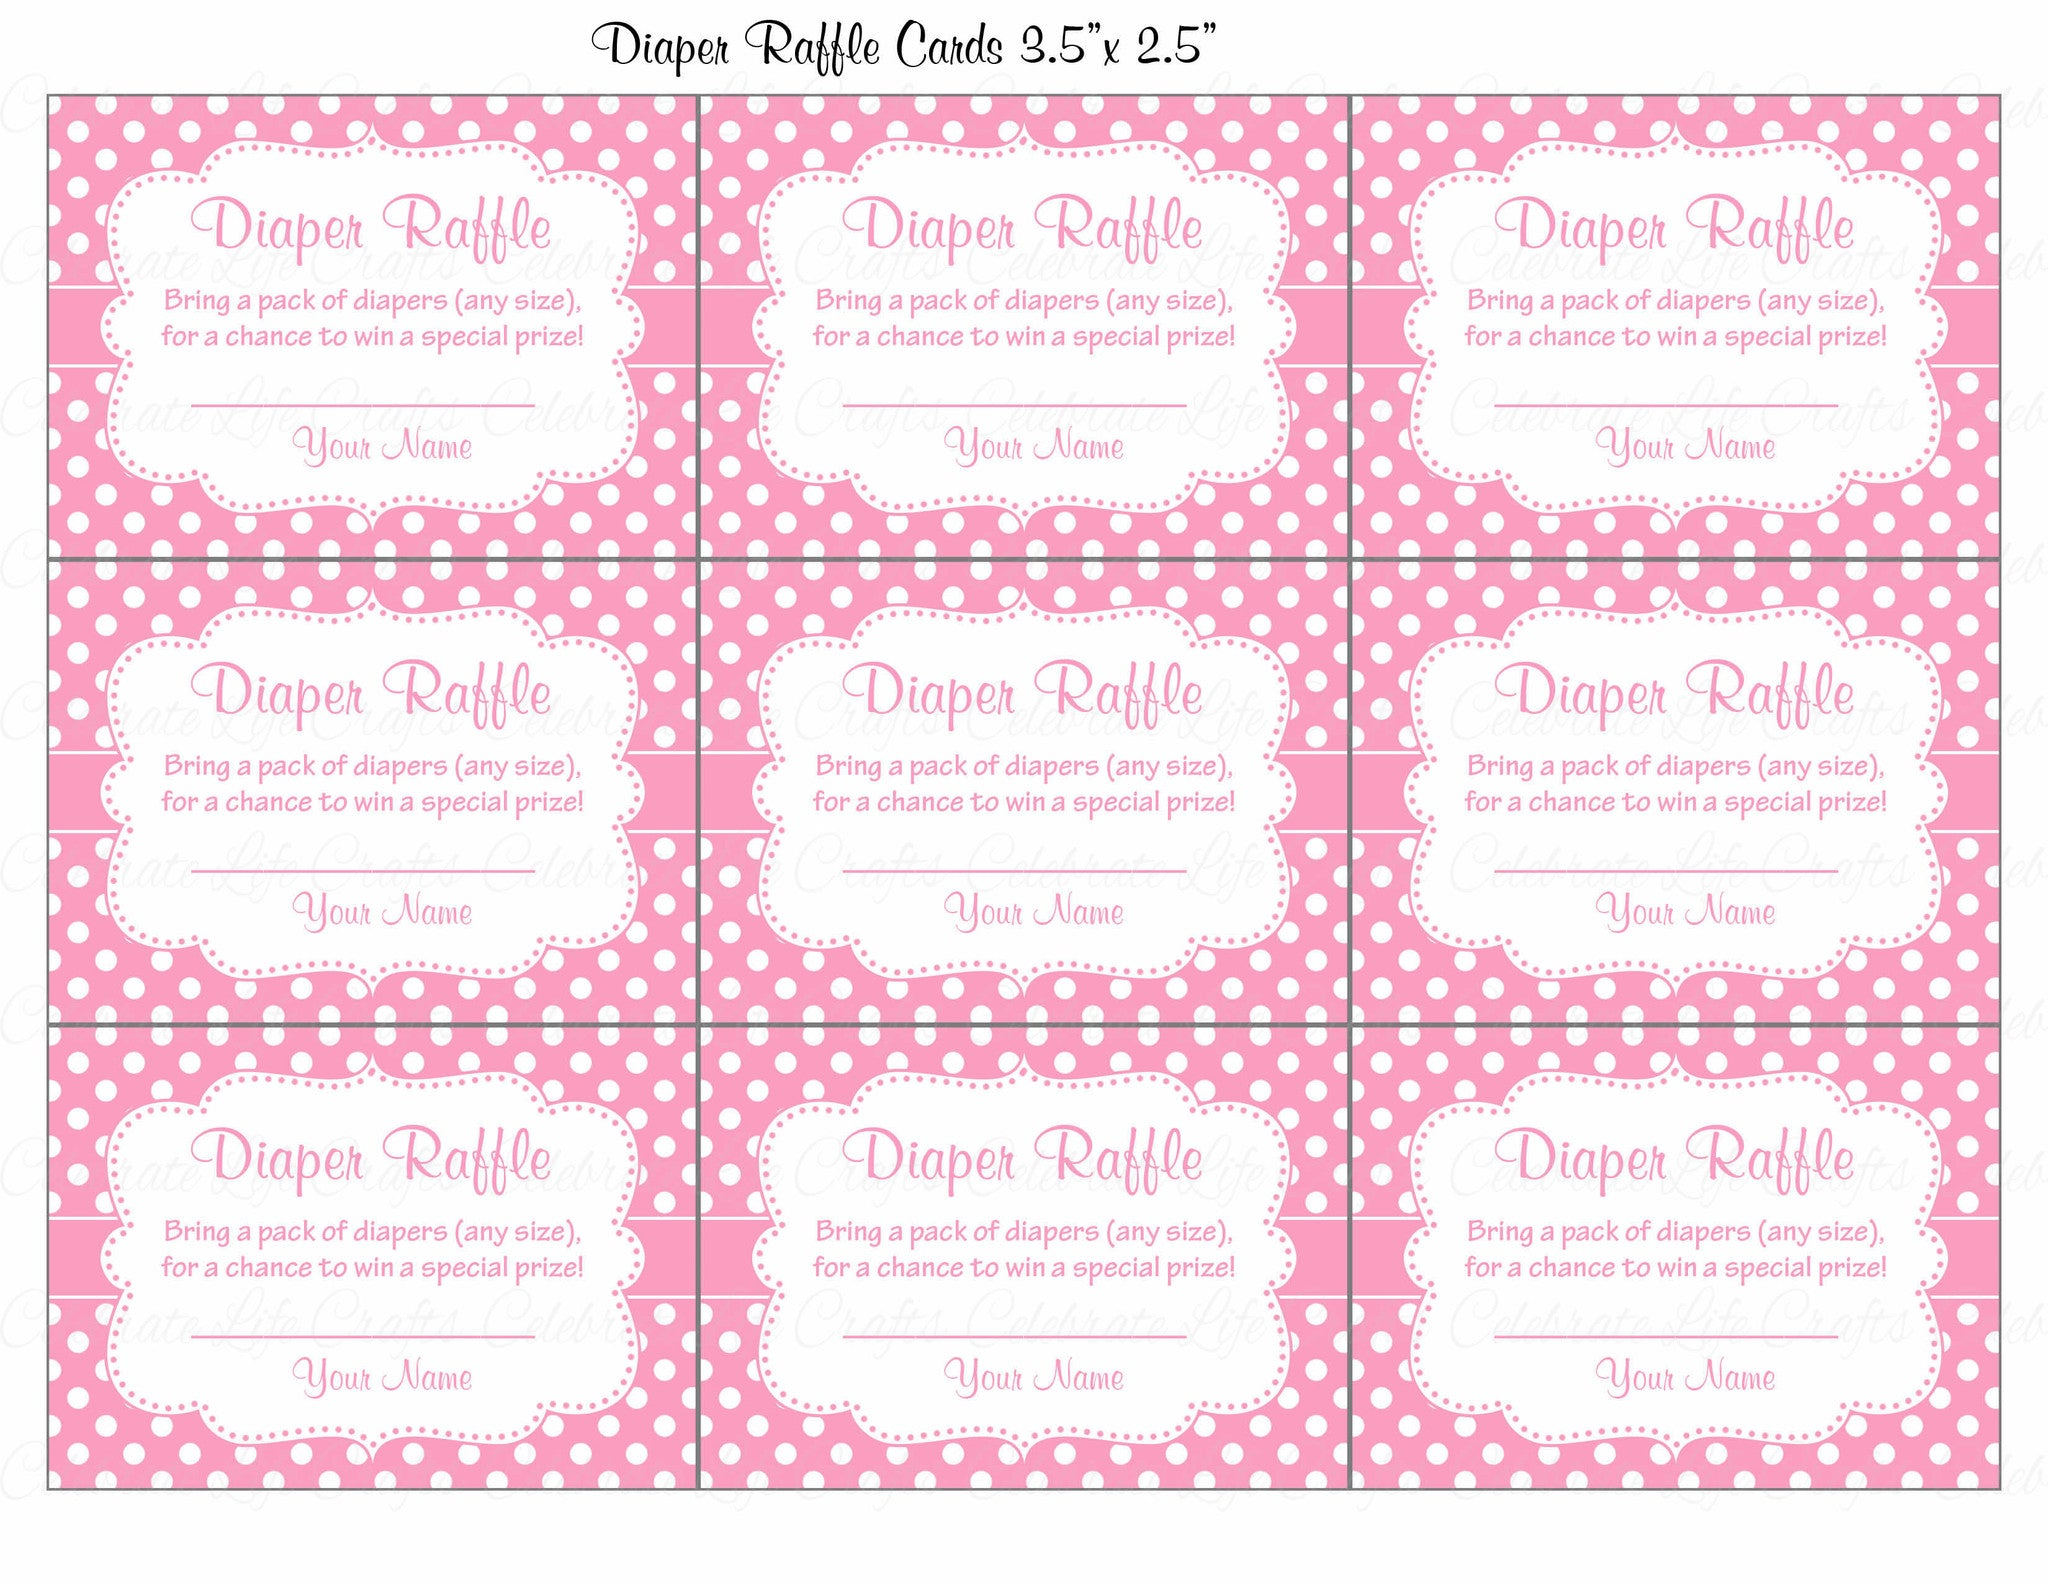 Diaper raffle tickets for baby shower princess baby shower theme diaper raffle tickets printable download pink polka baby shower invitation inserts b23001 filmwisefo